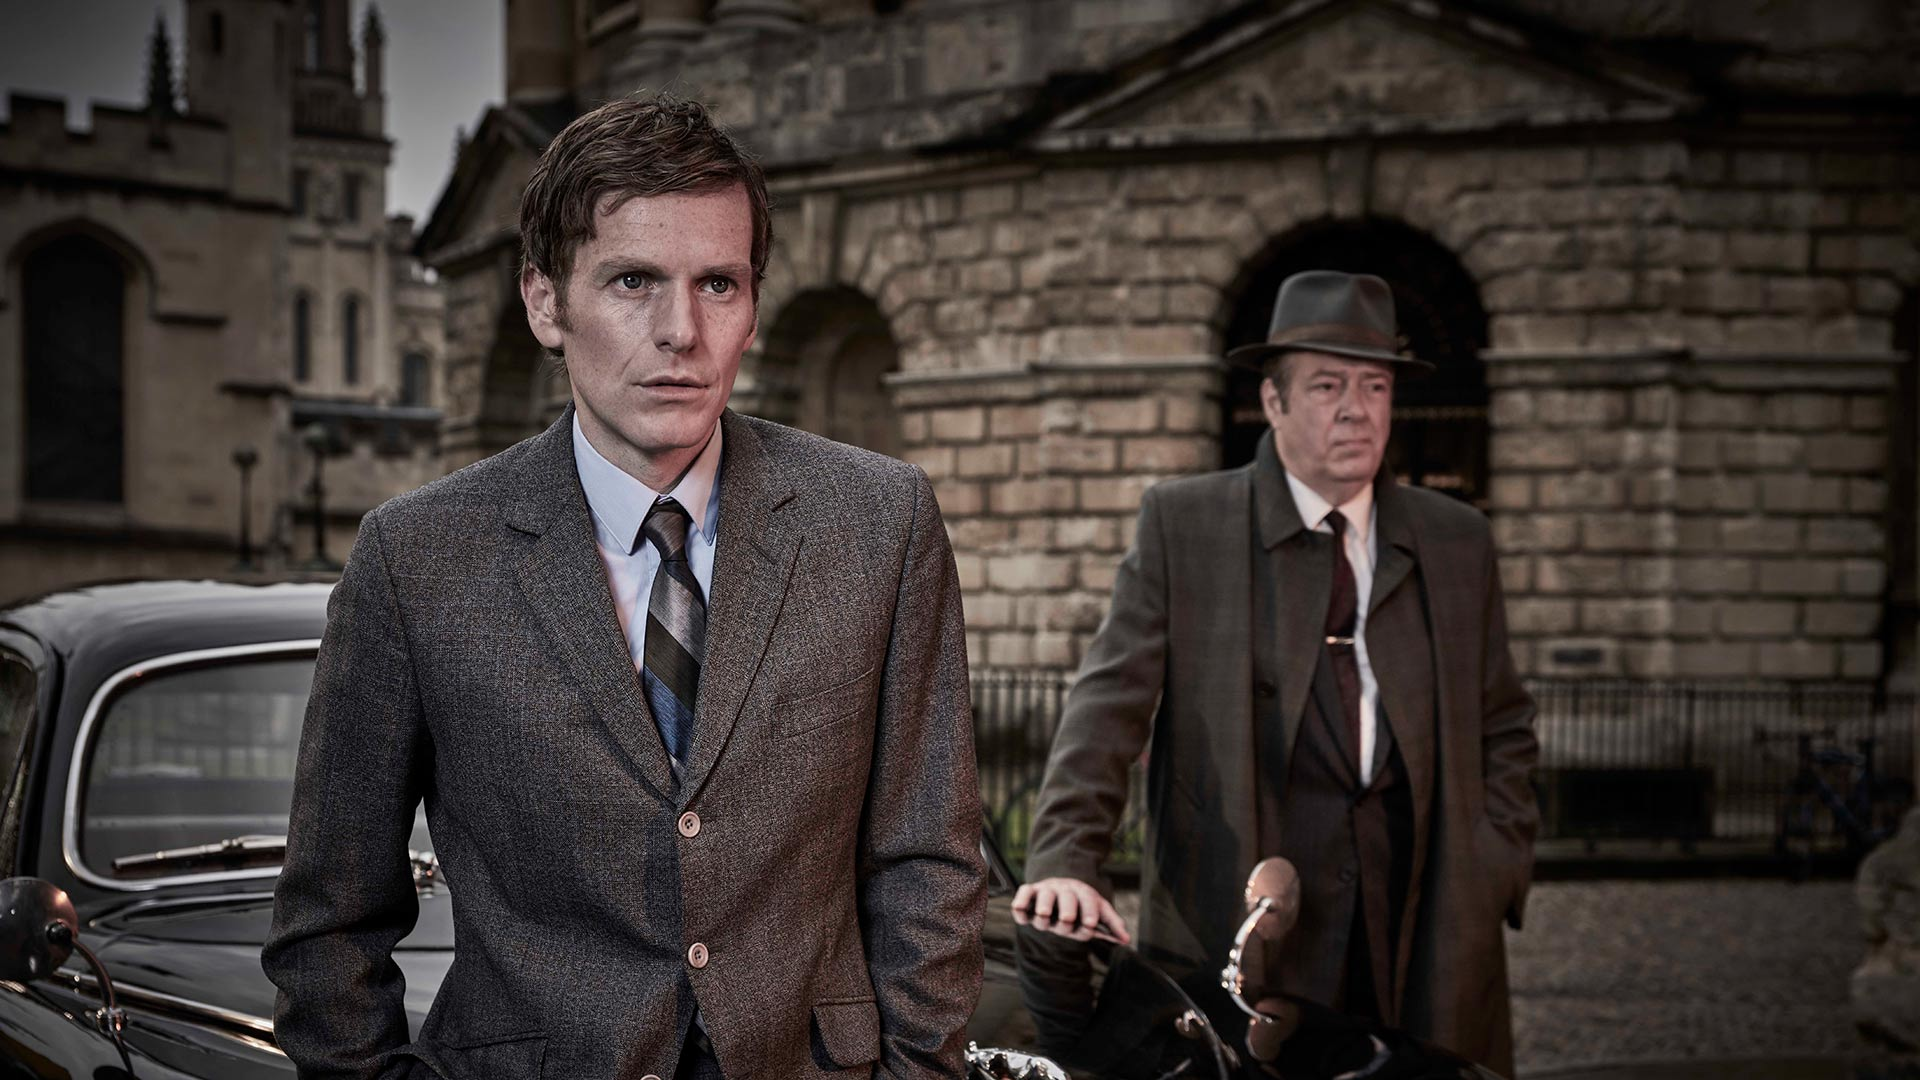 Detective Sergeant Endeavour Morse and Detective Chief Inspector Fred Thursday